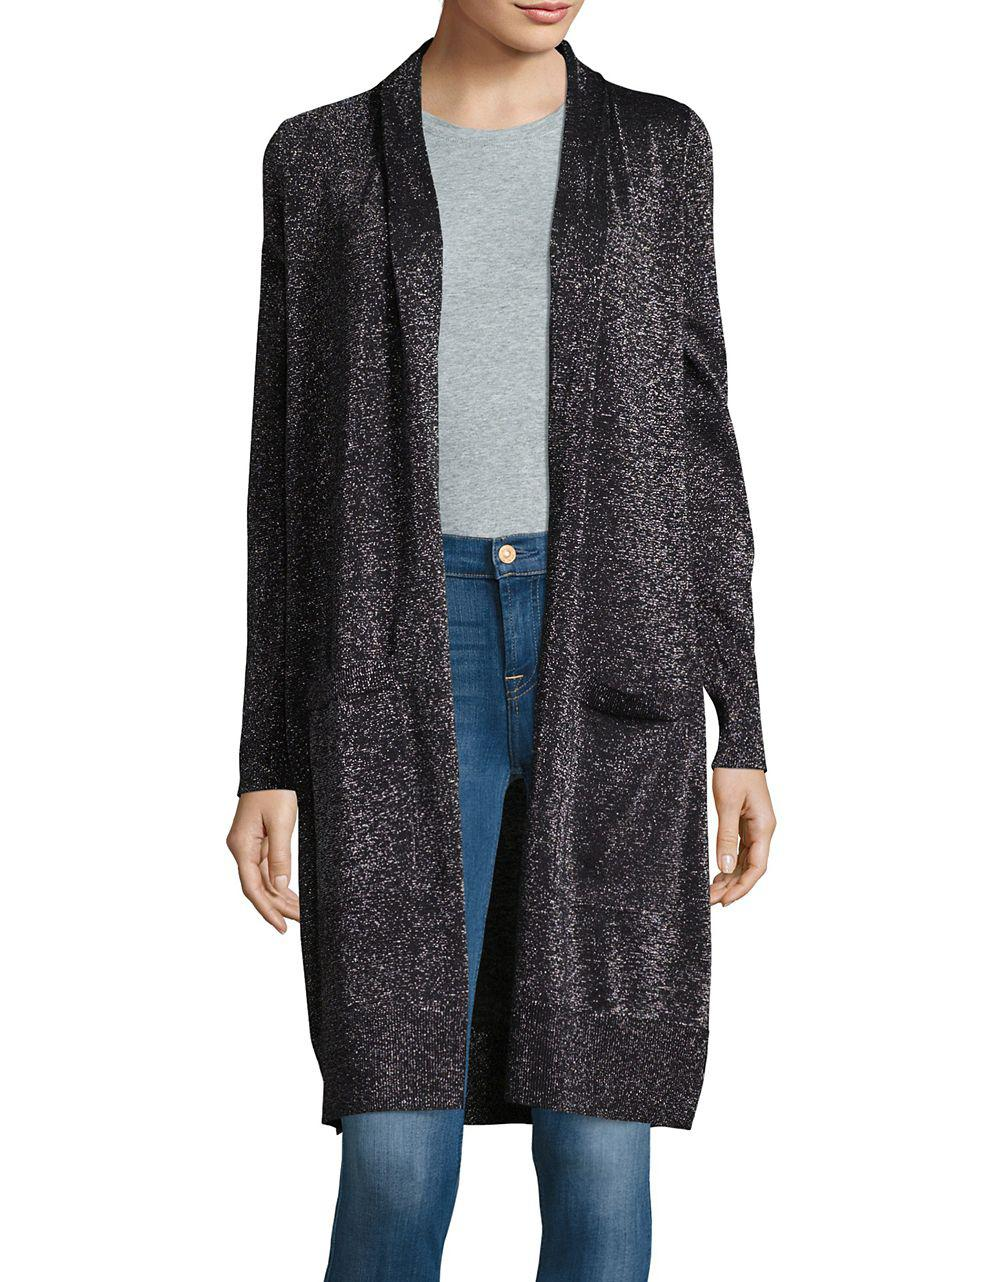 Michael michael kors Knit Open-front Duster Cardigan in Black | Lyst